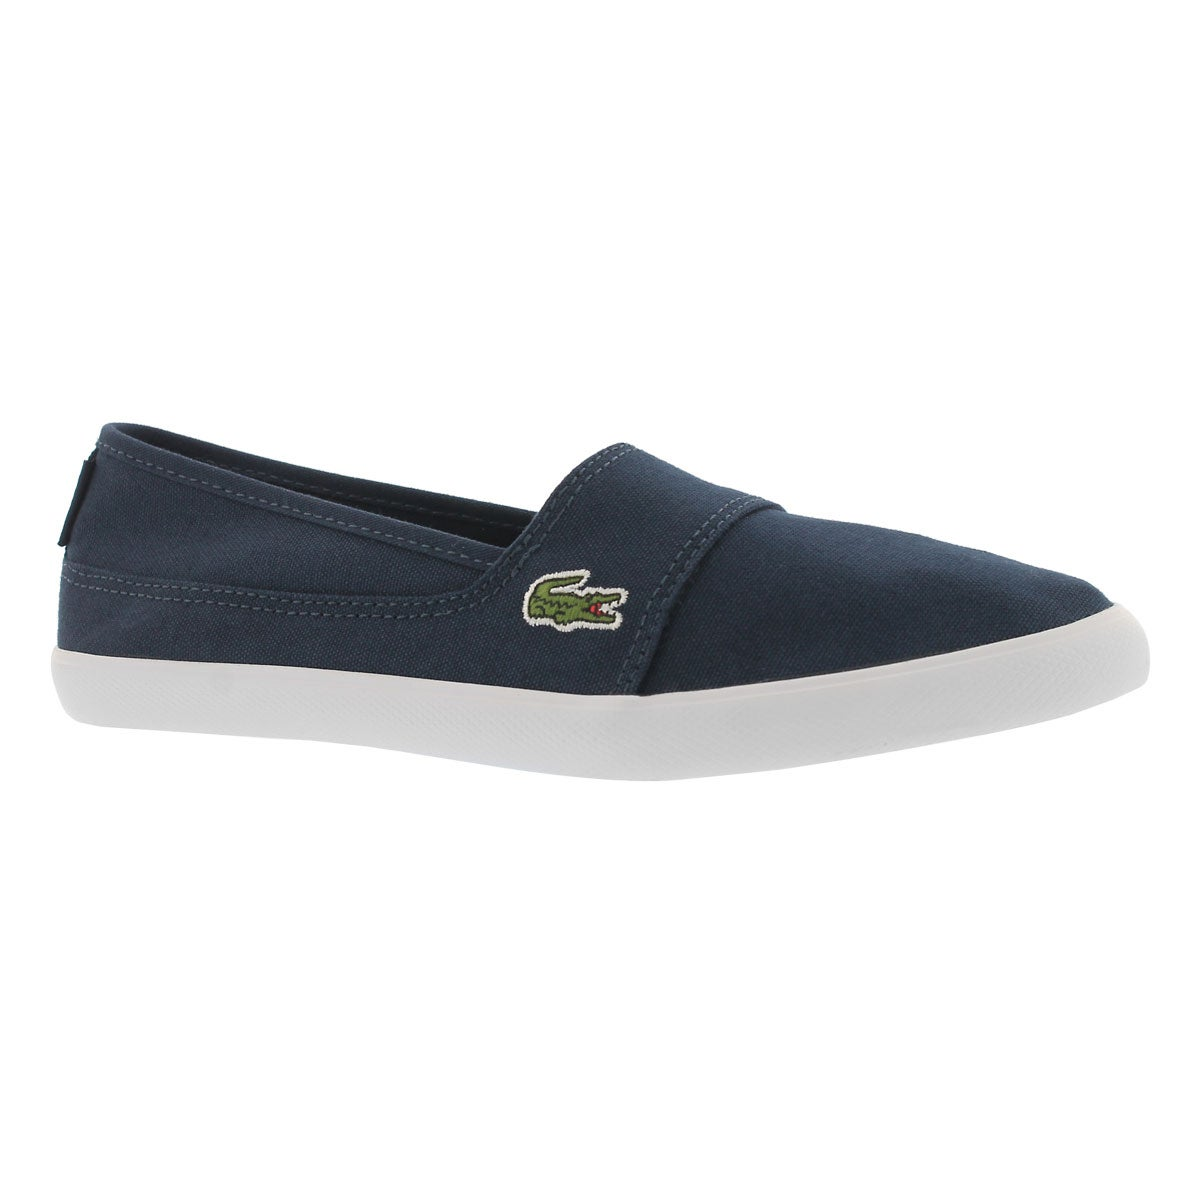 Women's MARICE BL 2 navy casual flat